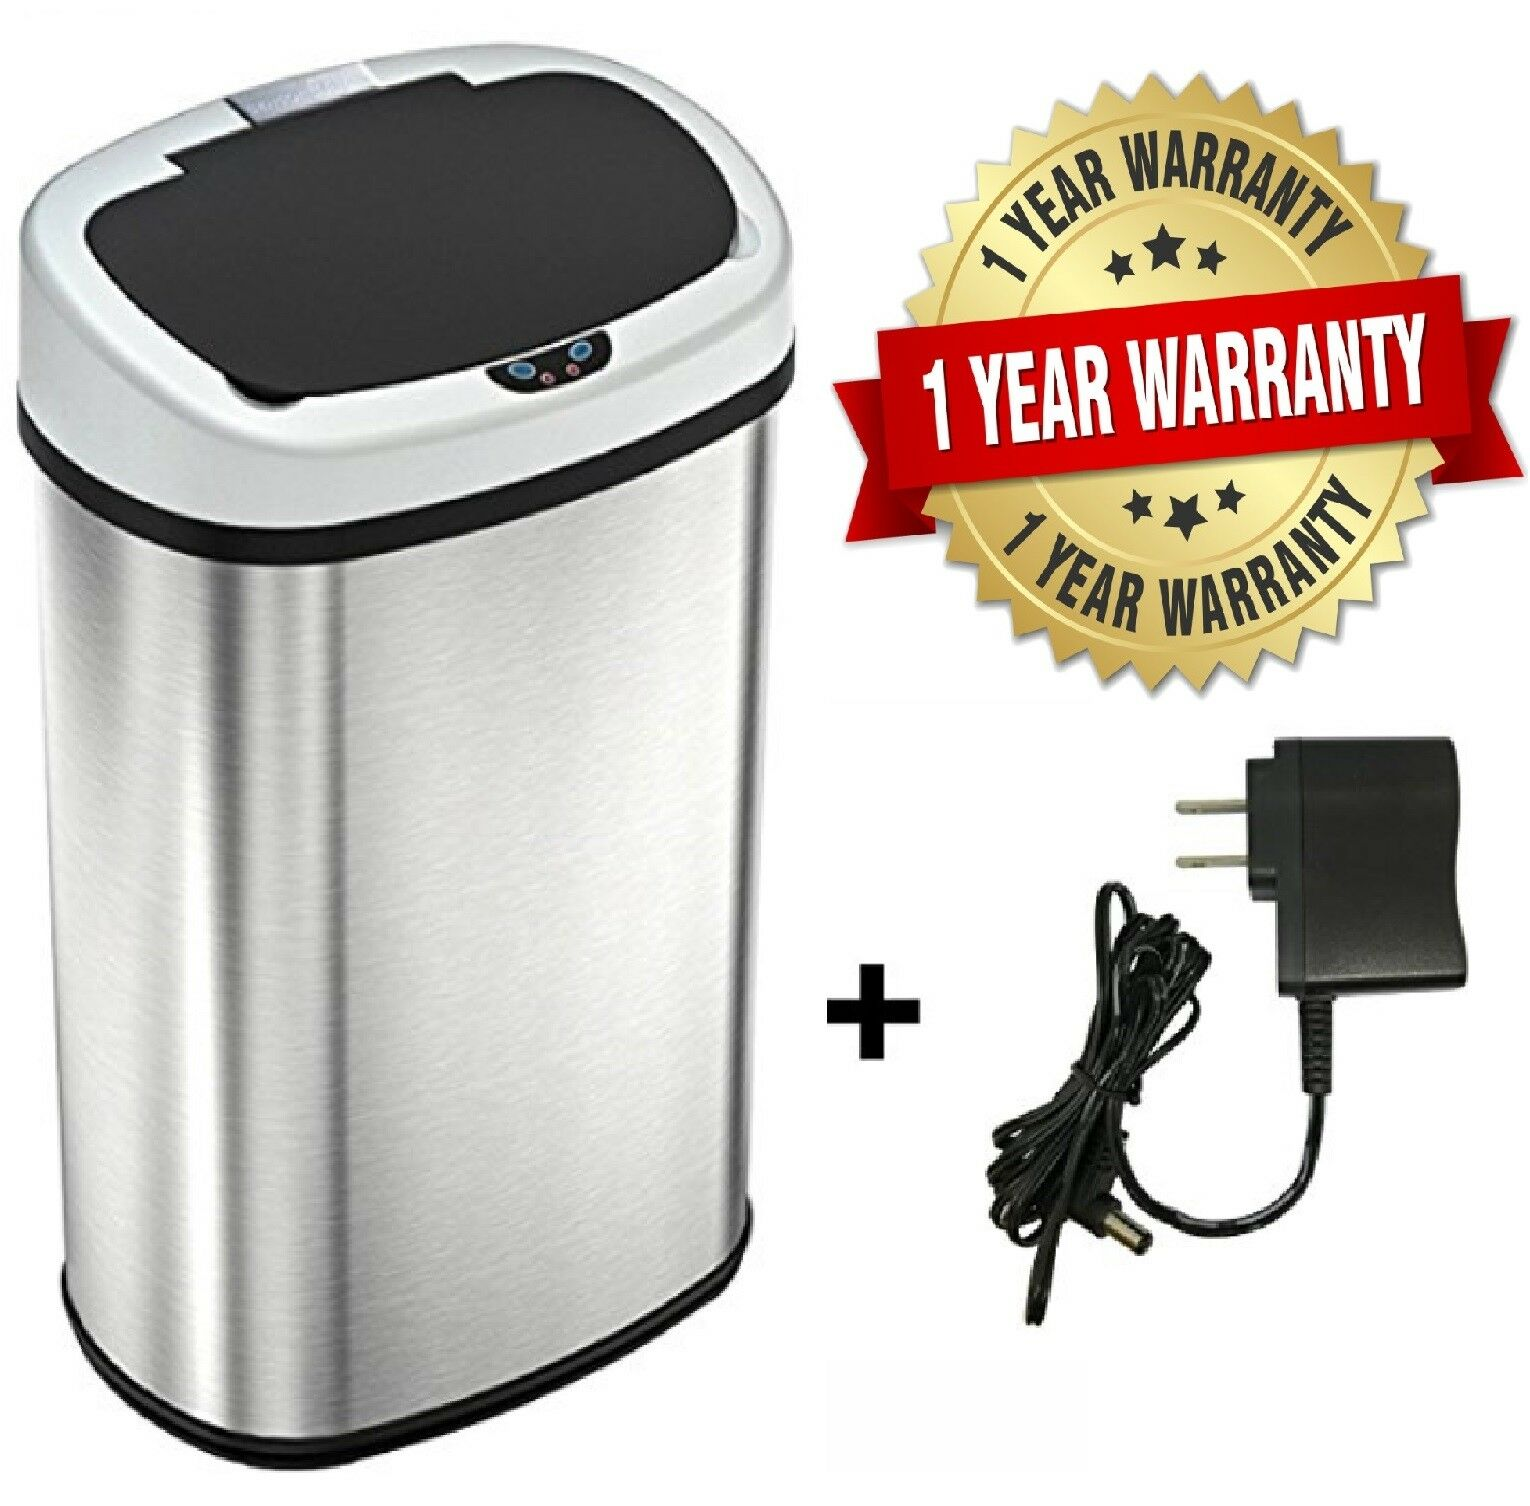 New 13-Gallon Touch Free Sensor Automatic Touchless Trash Can Kitchen Office